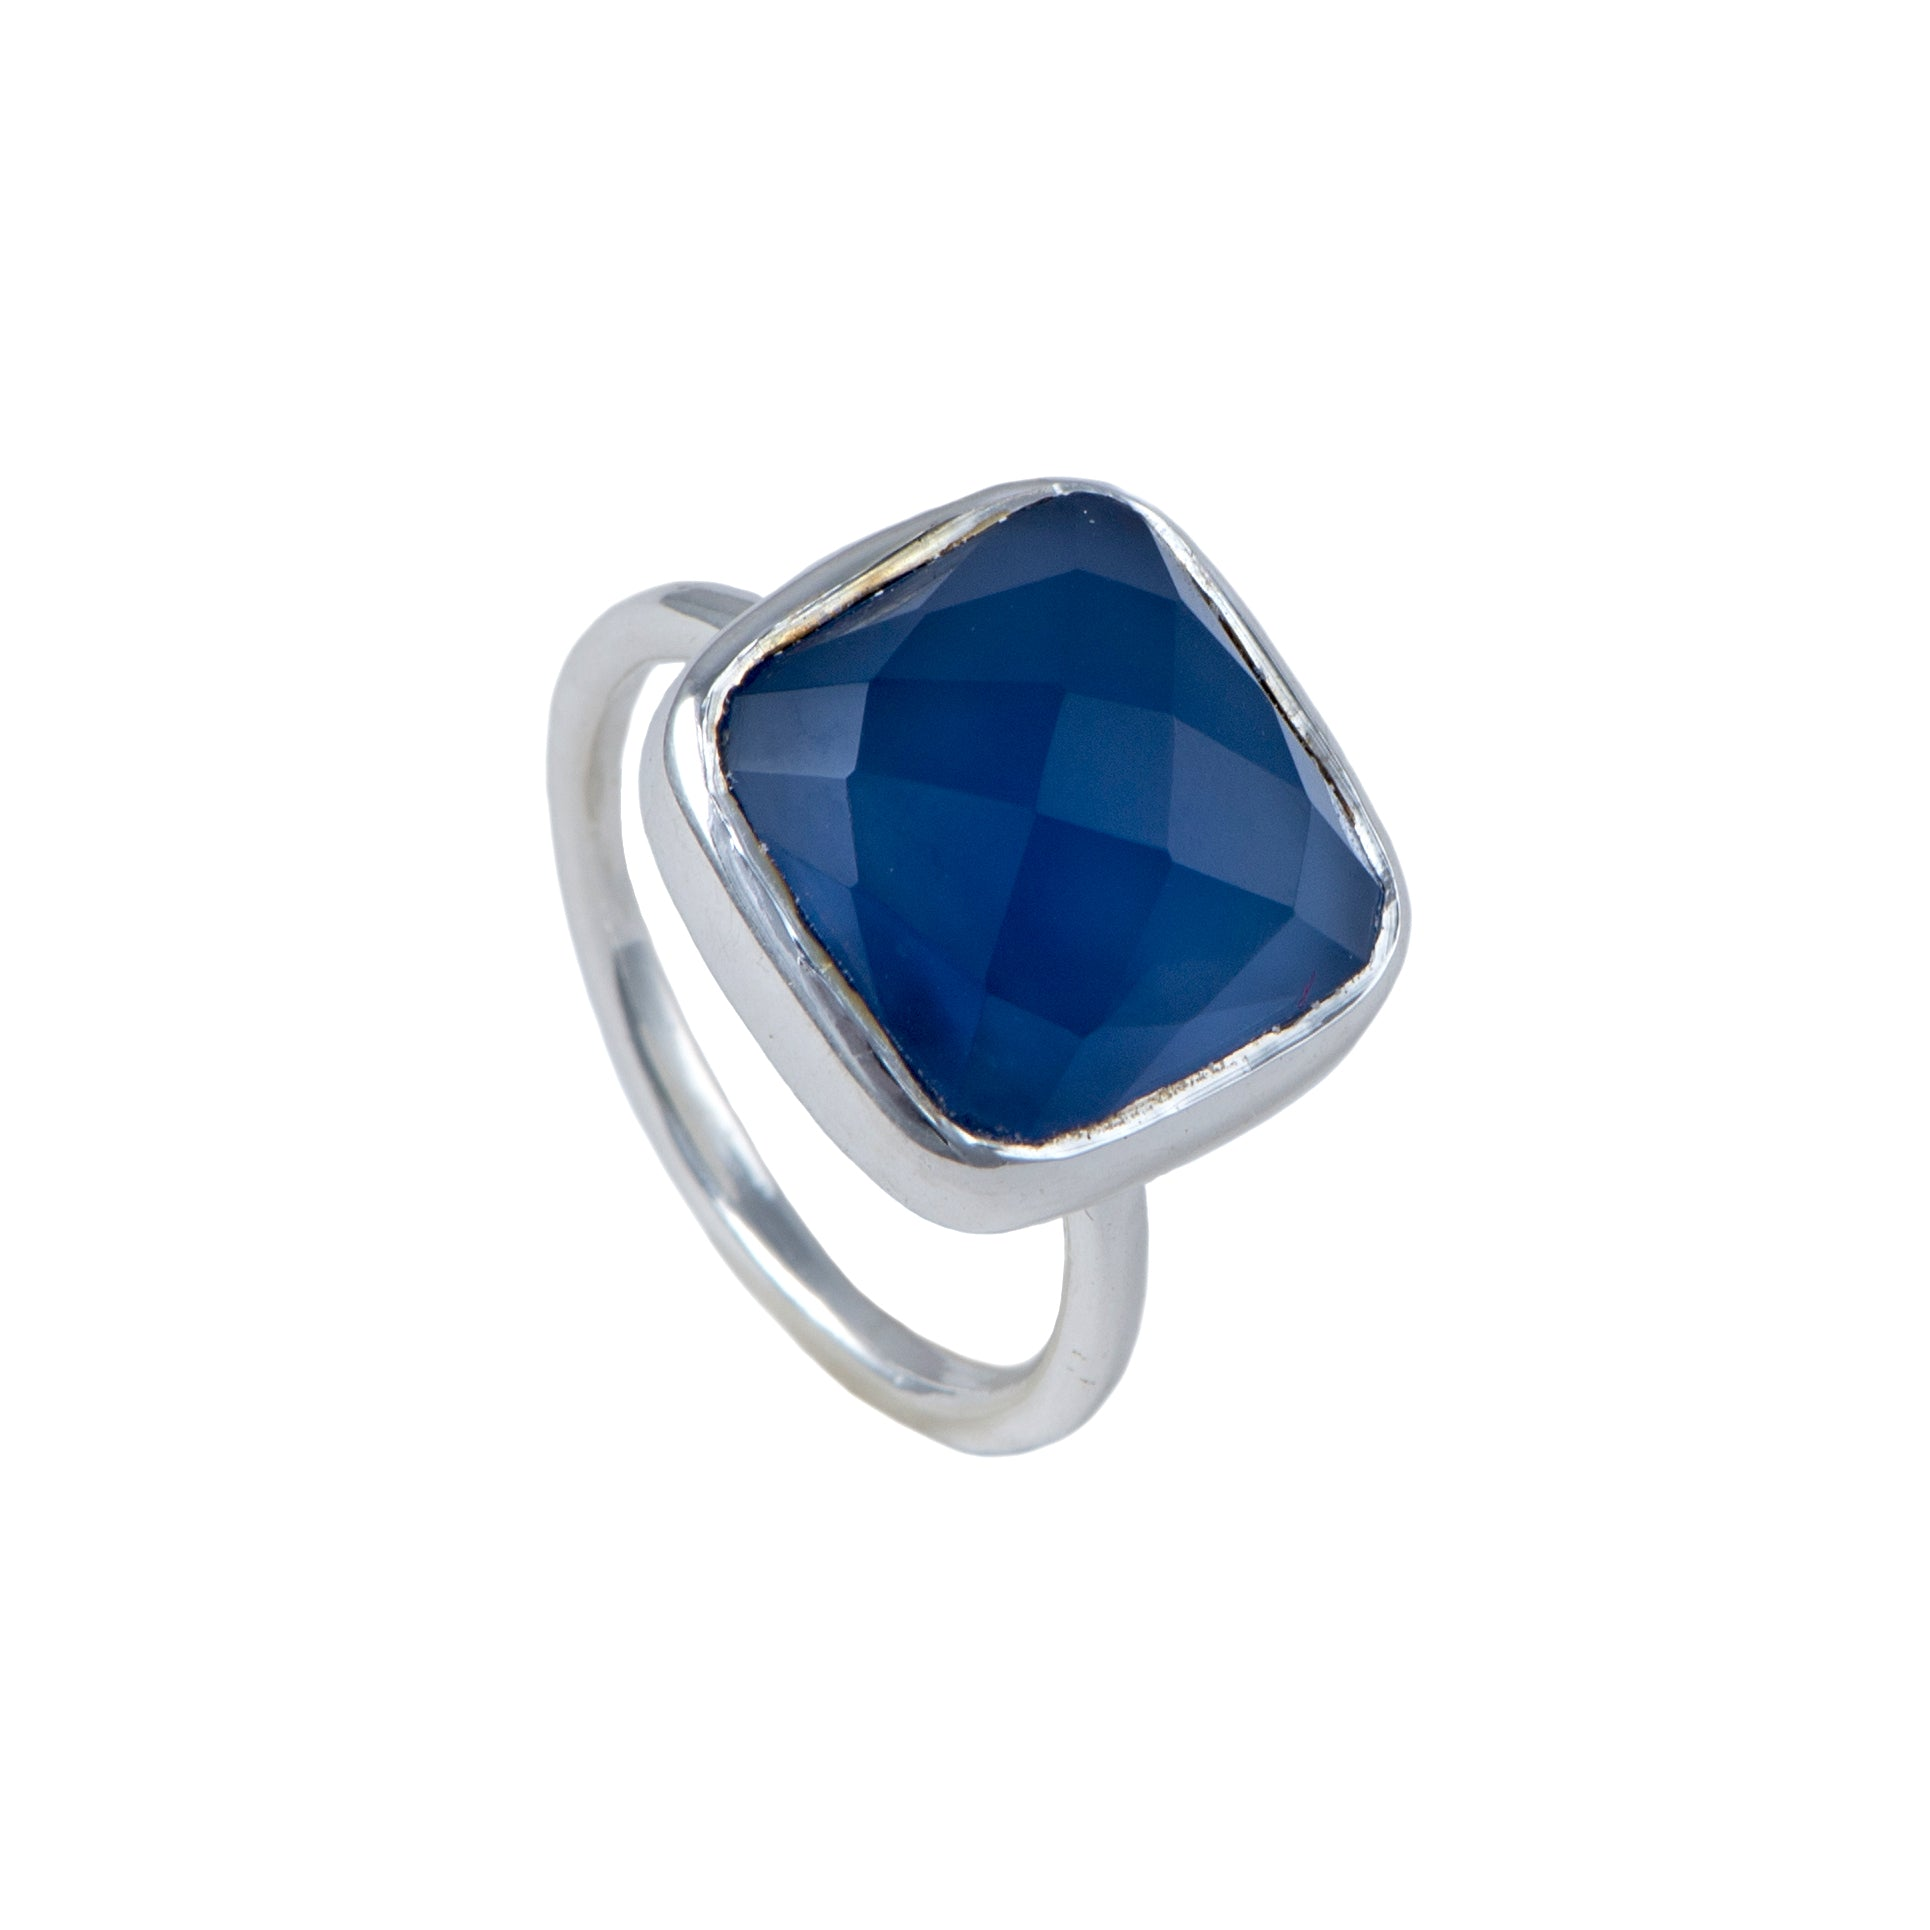 Silver Ring with Square Semiprecious Stone - Blue Chalcedony